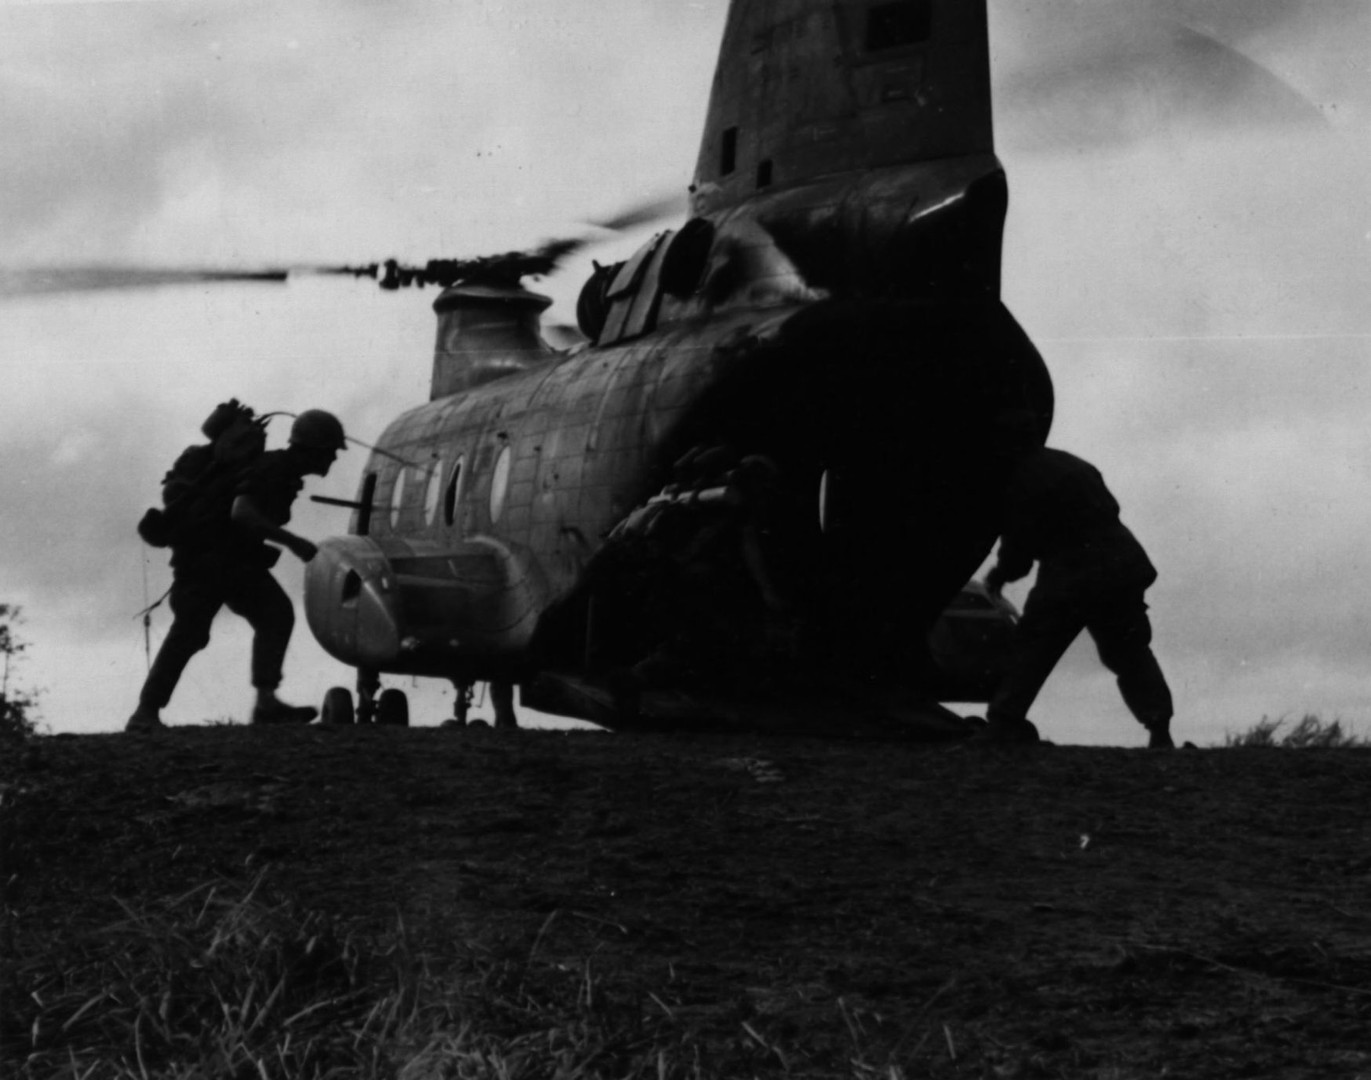 27NOV66. Troops of M Company, 3rd Battalion, 3rd Marine Regiment, prepare to embark aboard a helicopter during a sweep on Operation Prairie near the demilitarized zone.  Source: National Archives photo no. 26387367